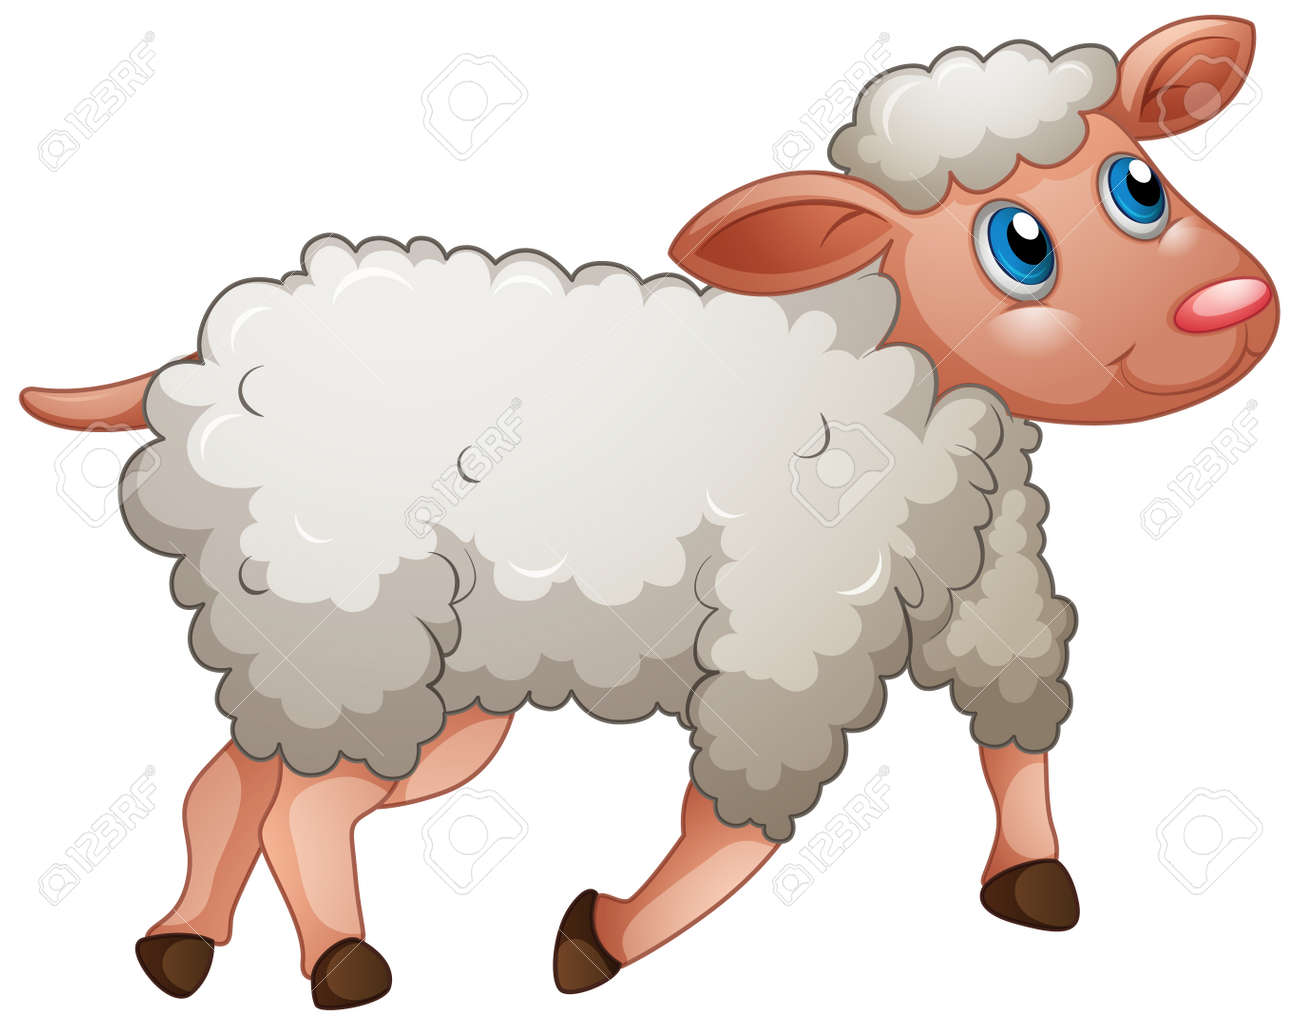 A cute sheep on white background illustration - 159290712